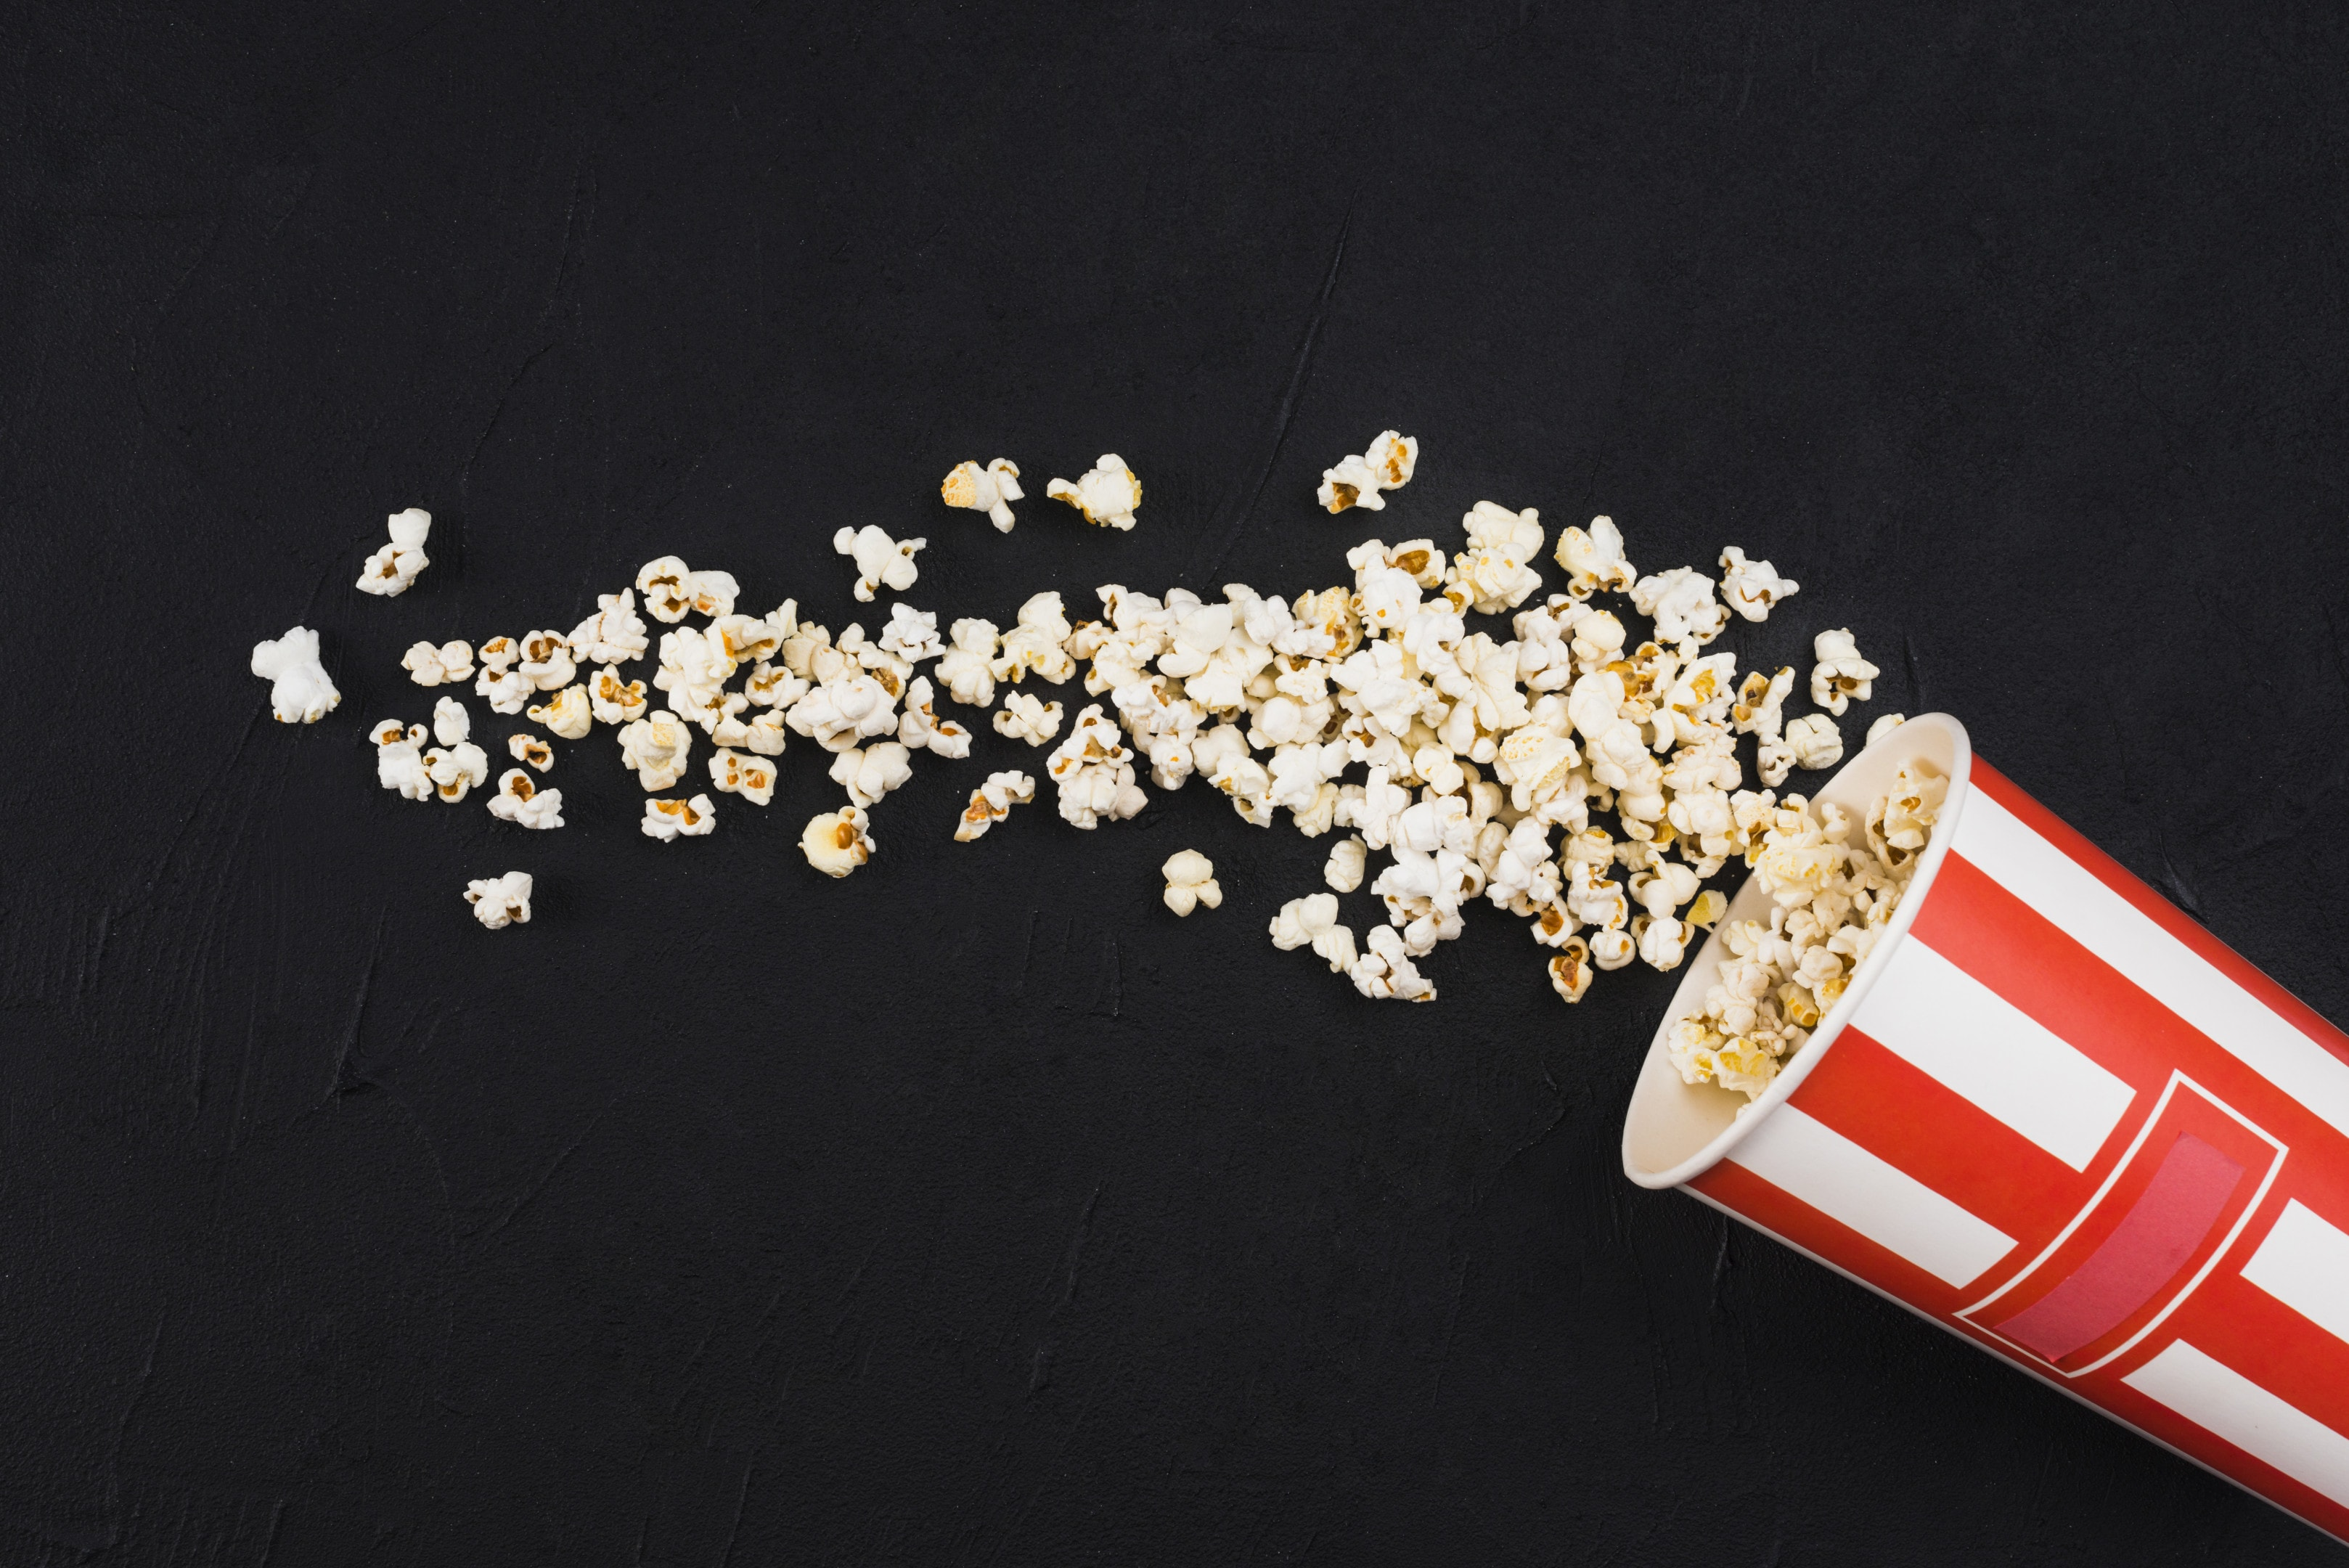 Popcorn spilled from striped on black background